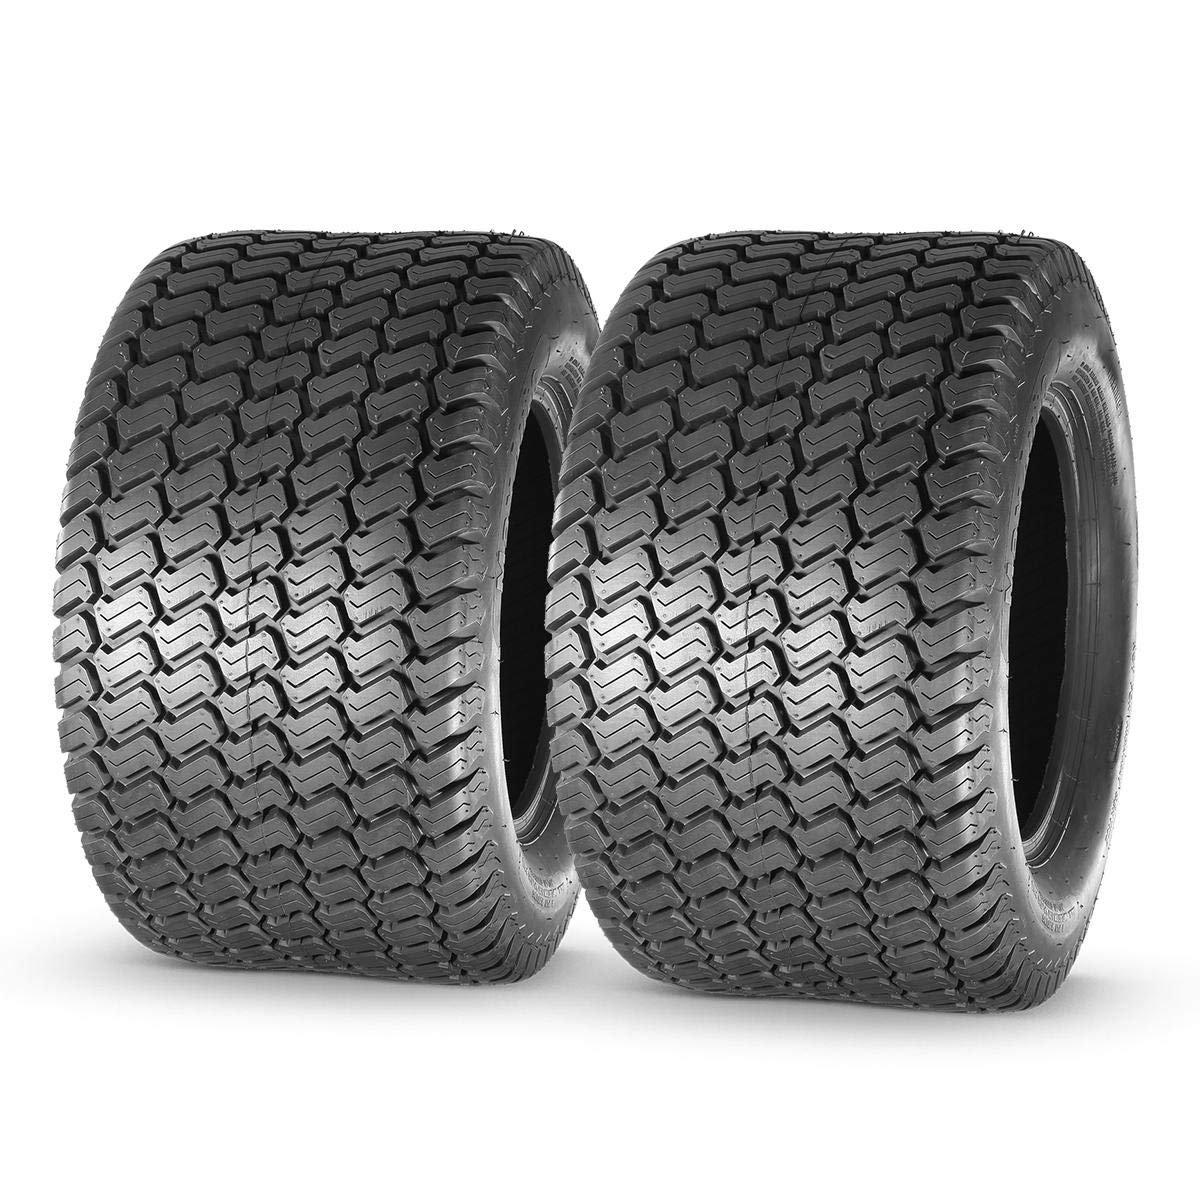 MaxAuto 24x12.00-12 Turf Lawn Mower Golf Cart Tractor Tires 4Ply P332 Tubeless, Set of 2